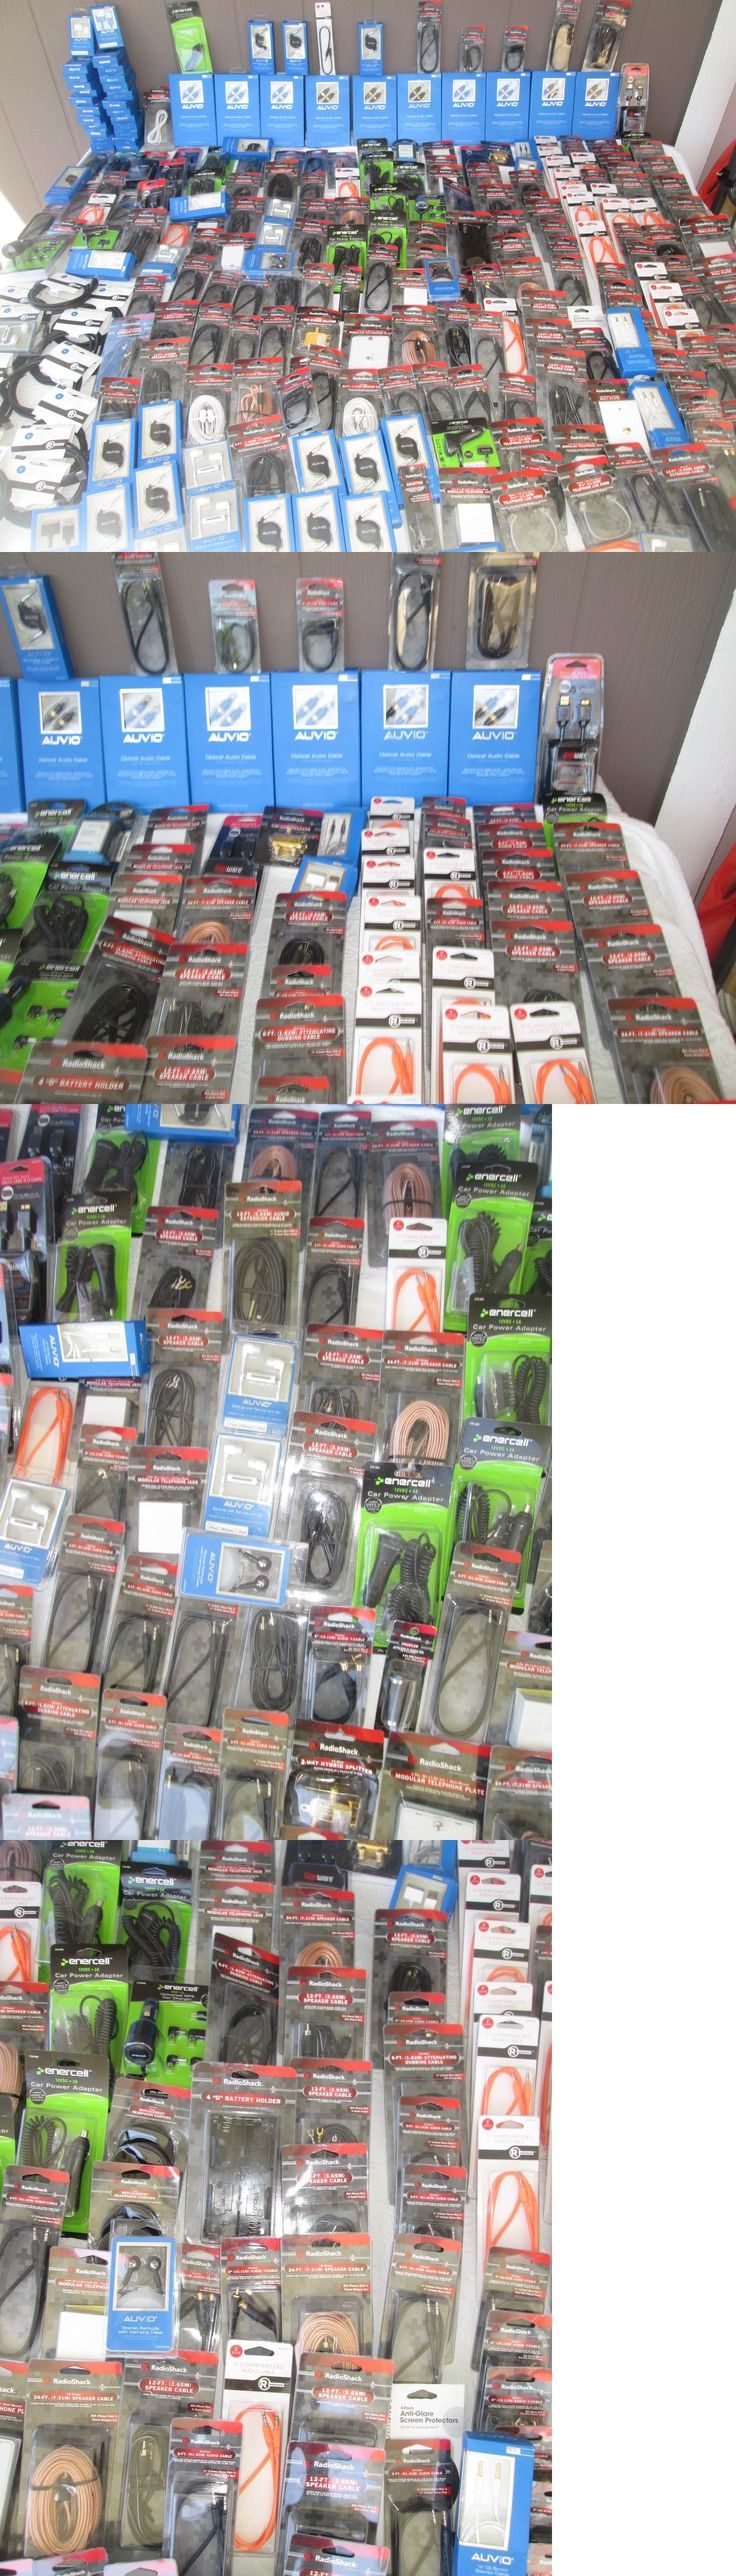 Other Consumer Electronic Lots: Wholesale Lot Of Radio Shack Merchandise 275 Pcs. For Retail New Jp 17 -> BUY IT NOW ONLY: $295.0 on eBay!